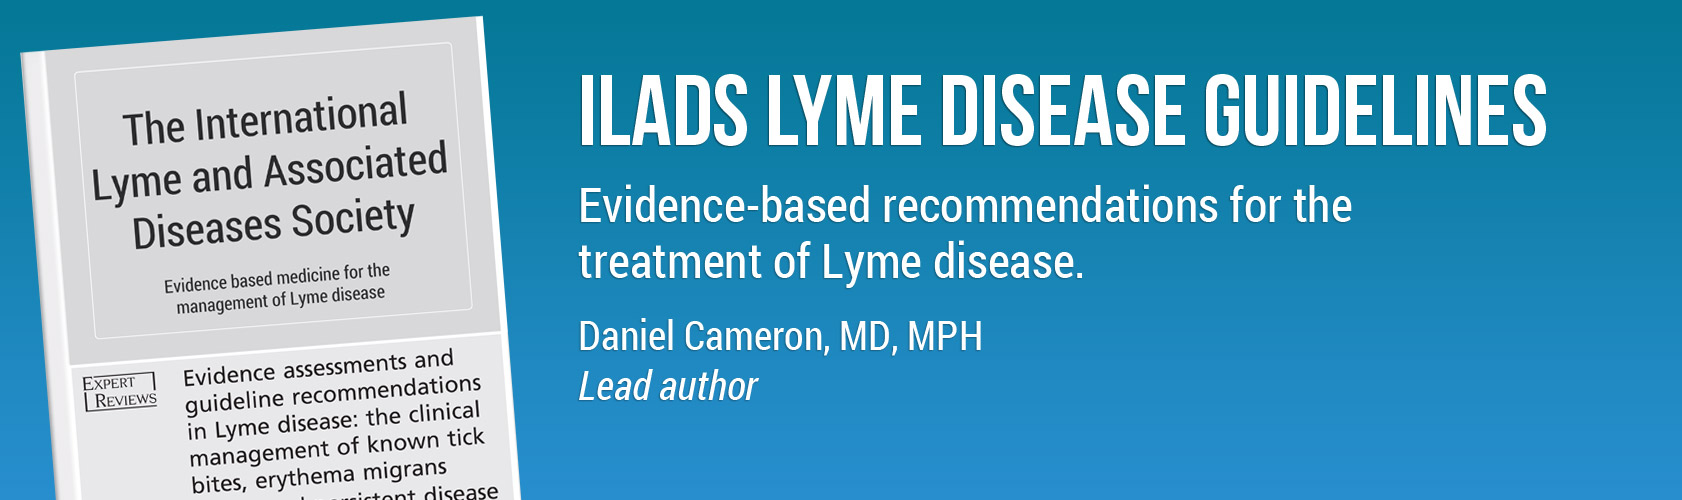 LADS Lyme disease guidelines rank in top 5% of all research articles